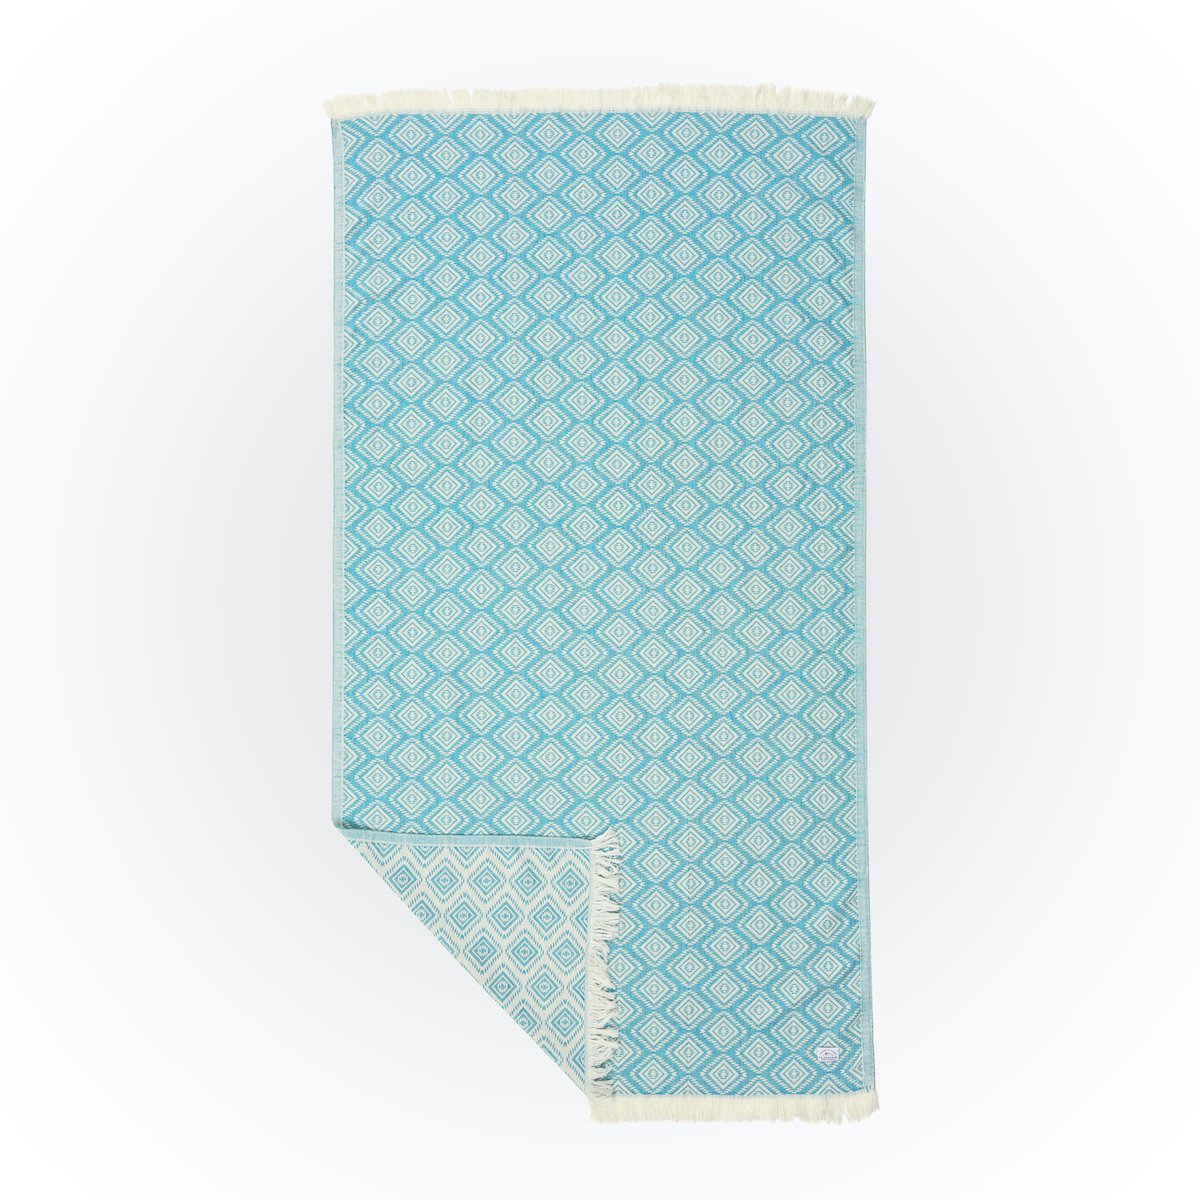 Turkish Towel - Wilverley Turquoise image 2